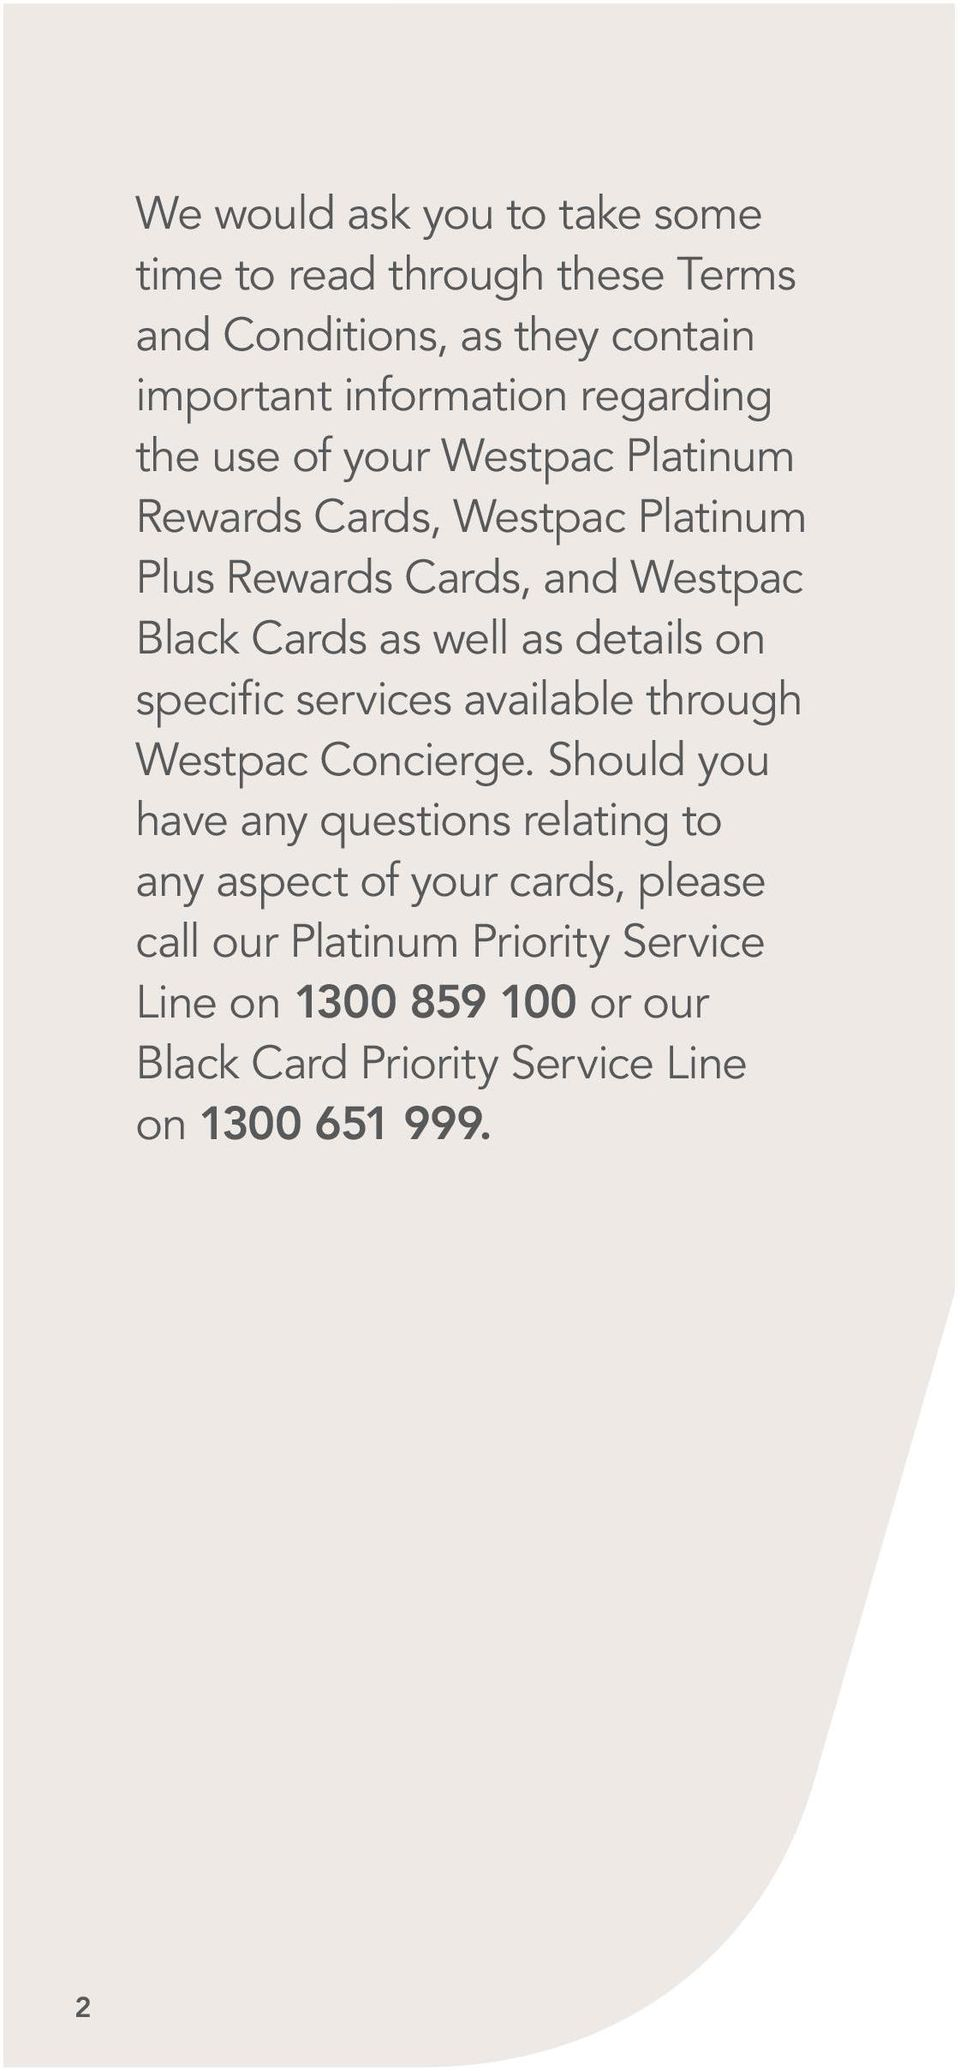 well as details on specific services available through Westpac Concierge.